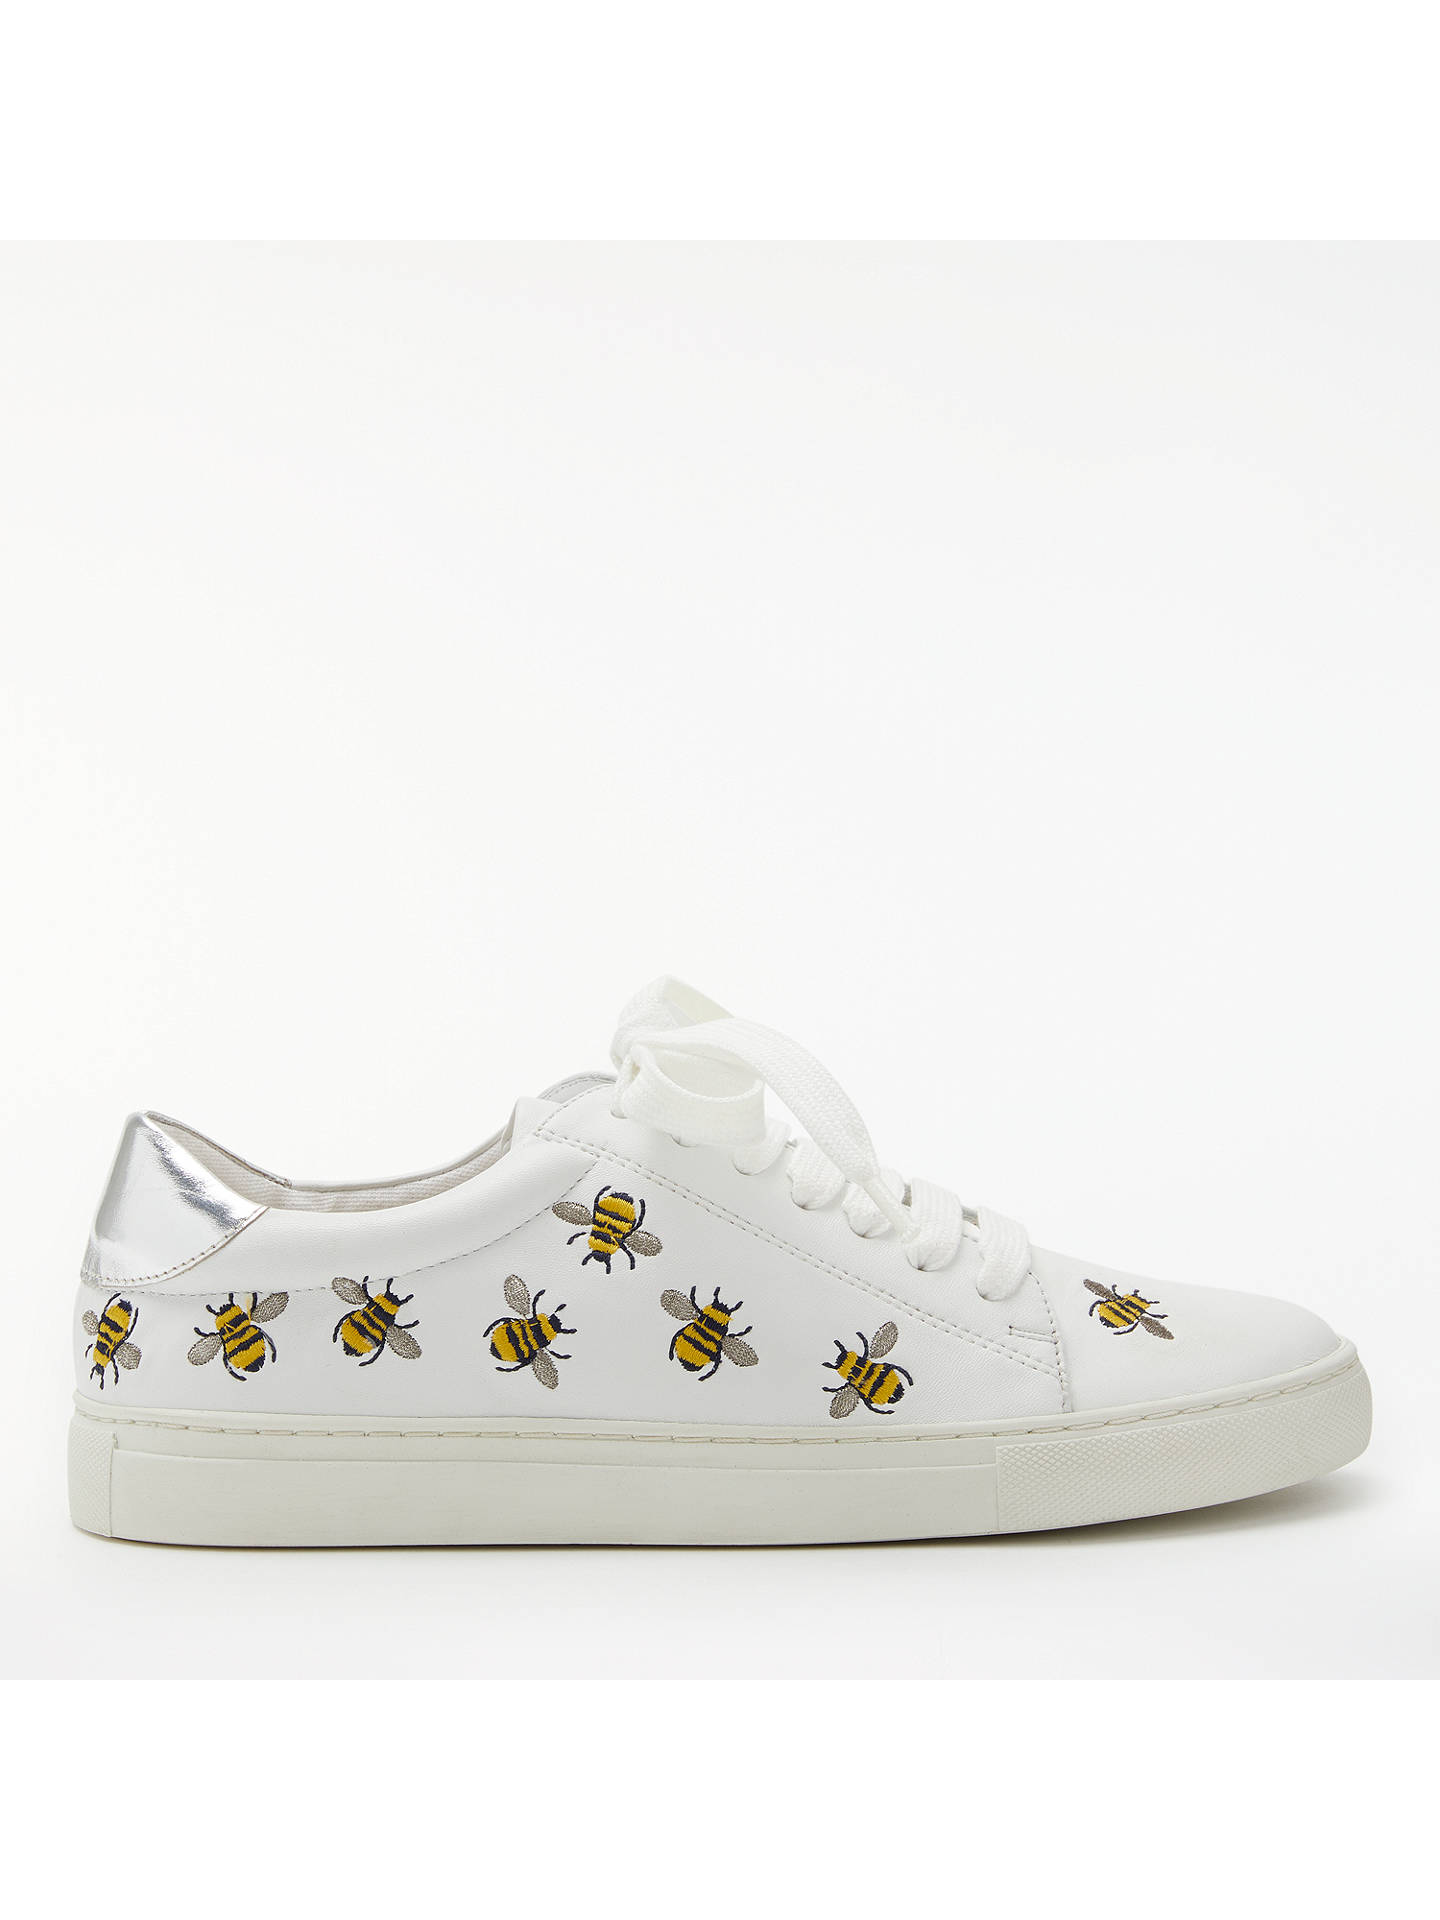 a1e7d6bfcf8 Buy Boden Hollie Bumble Bee Lace Up Trainers